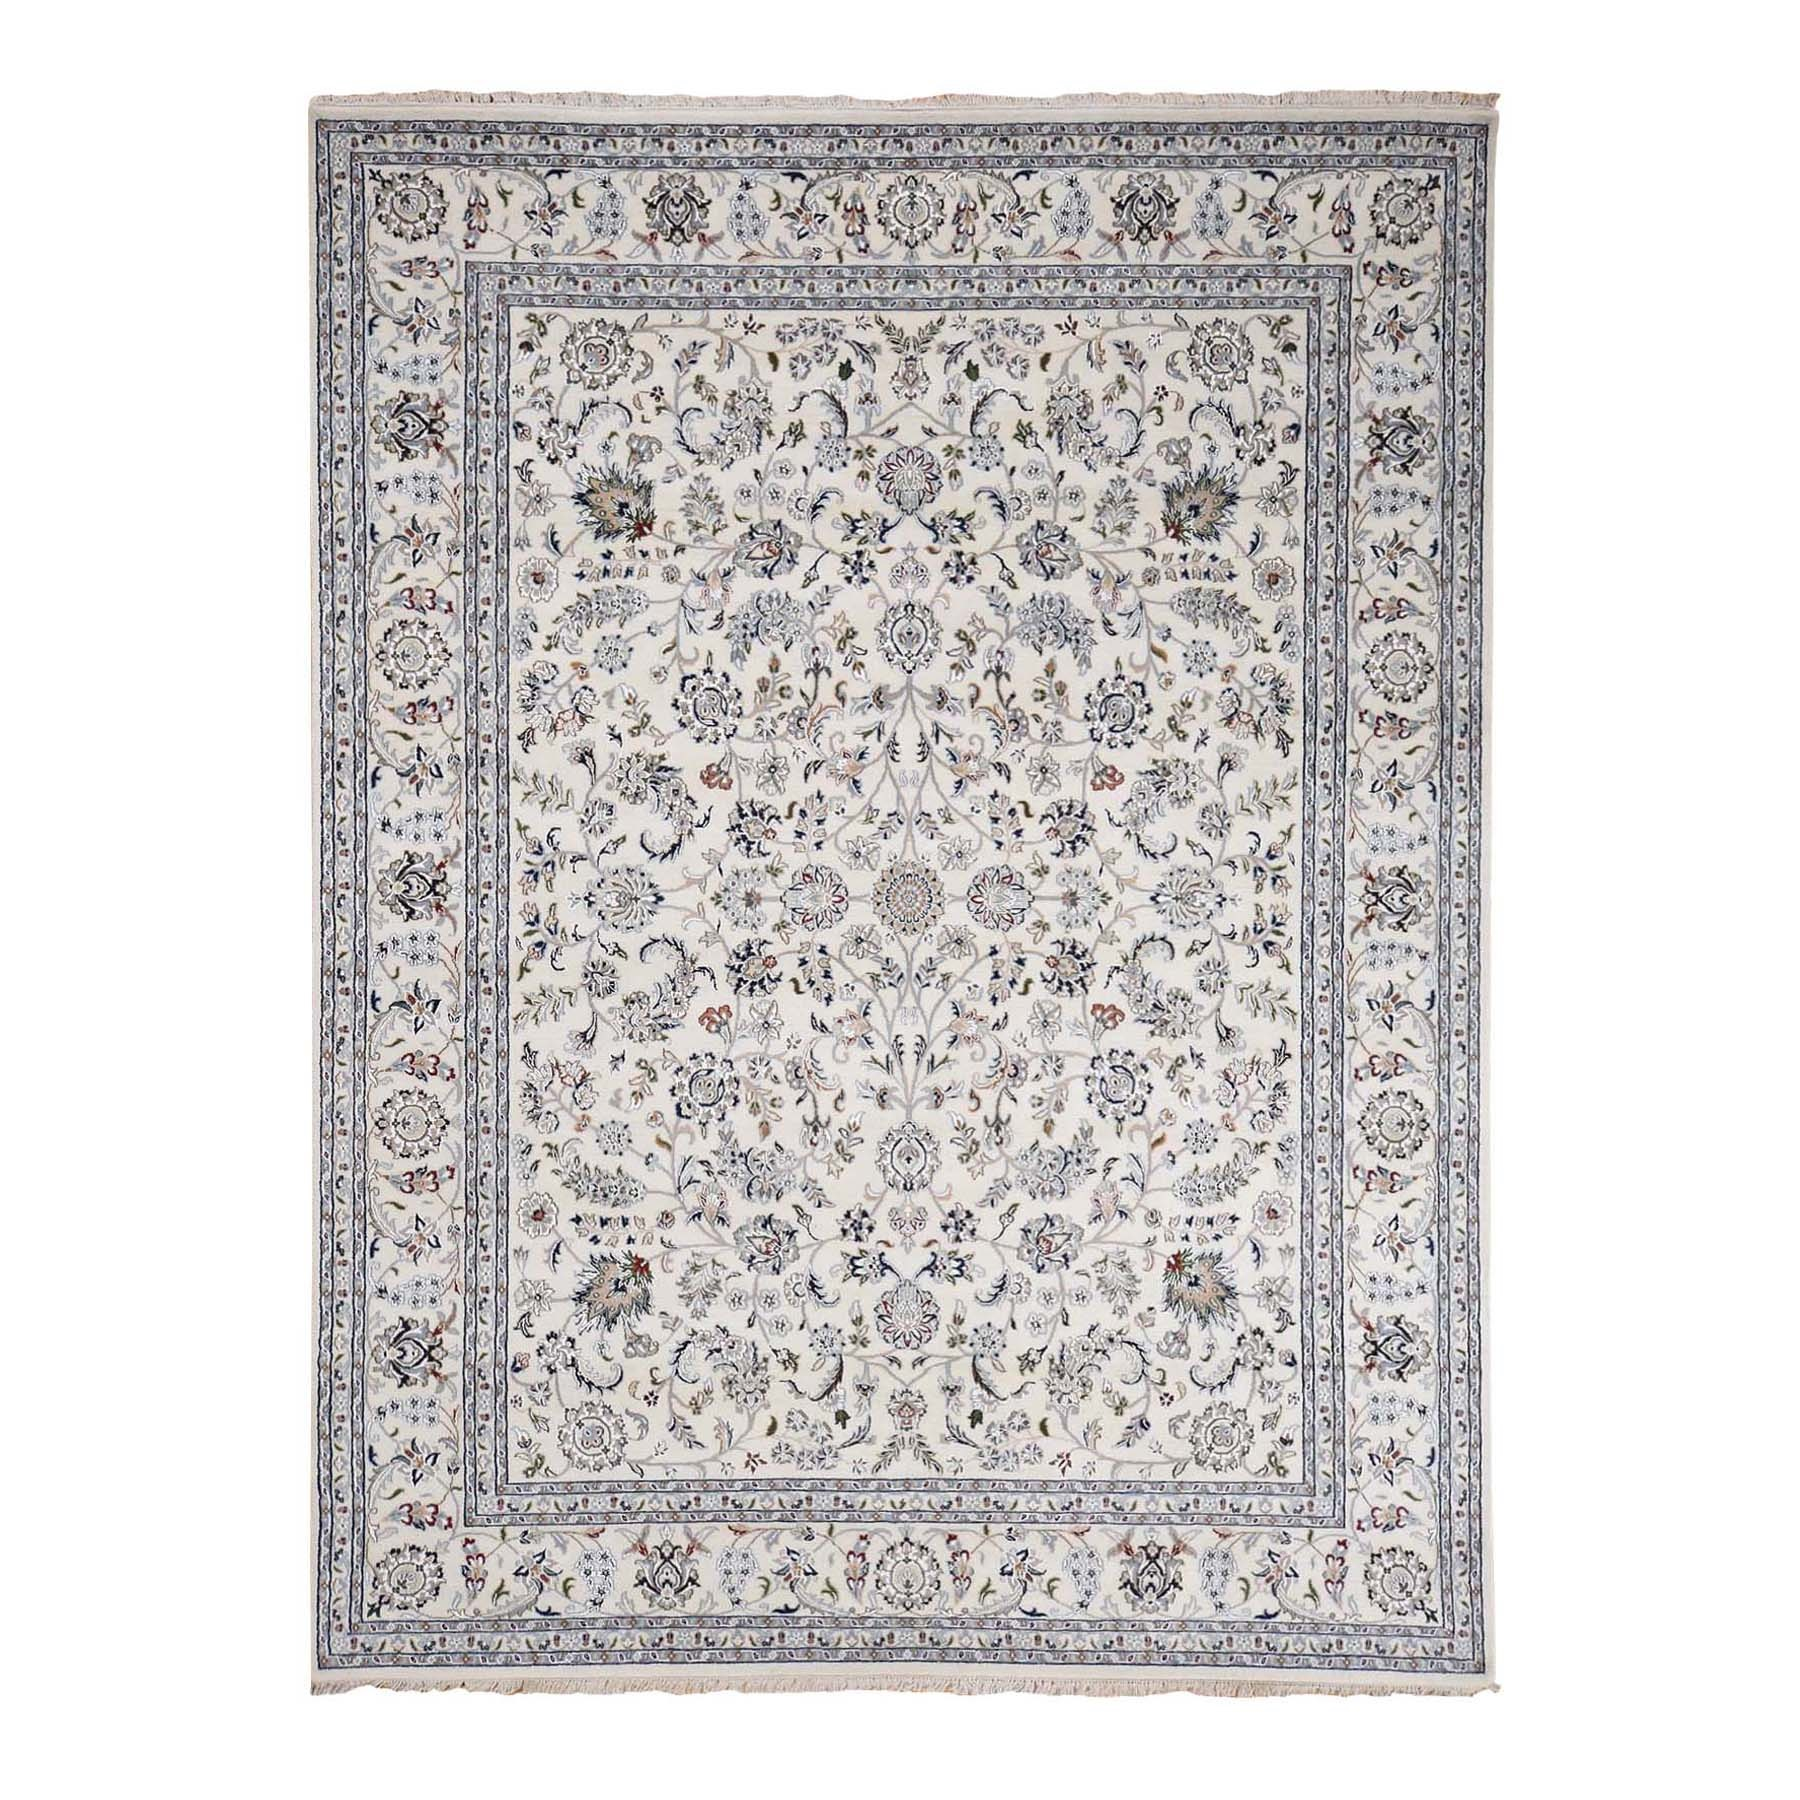 8'X10' Wool And Silk 250 Kpsi All Over Design Nain Hand Knotted Oriental Rug moad76be